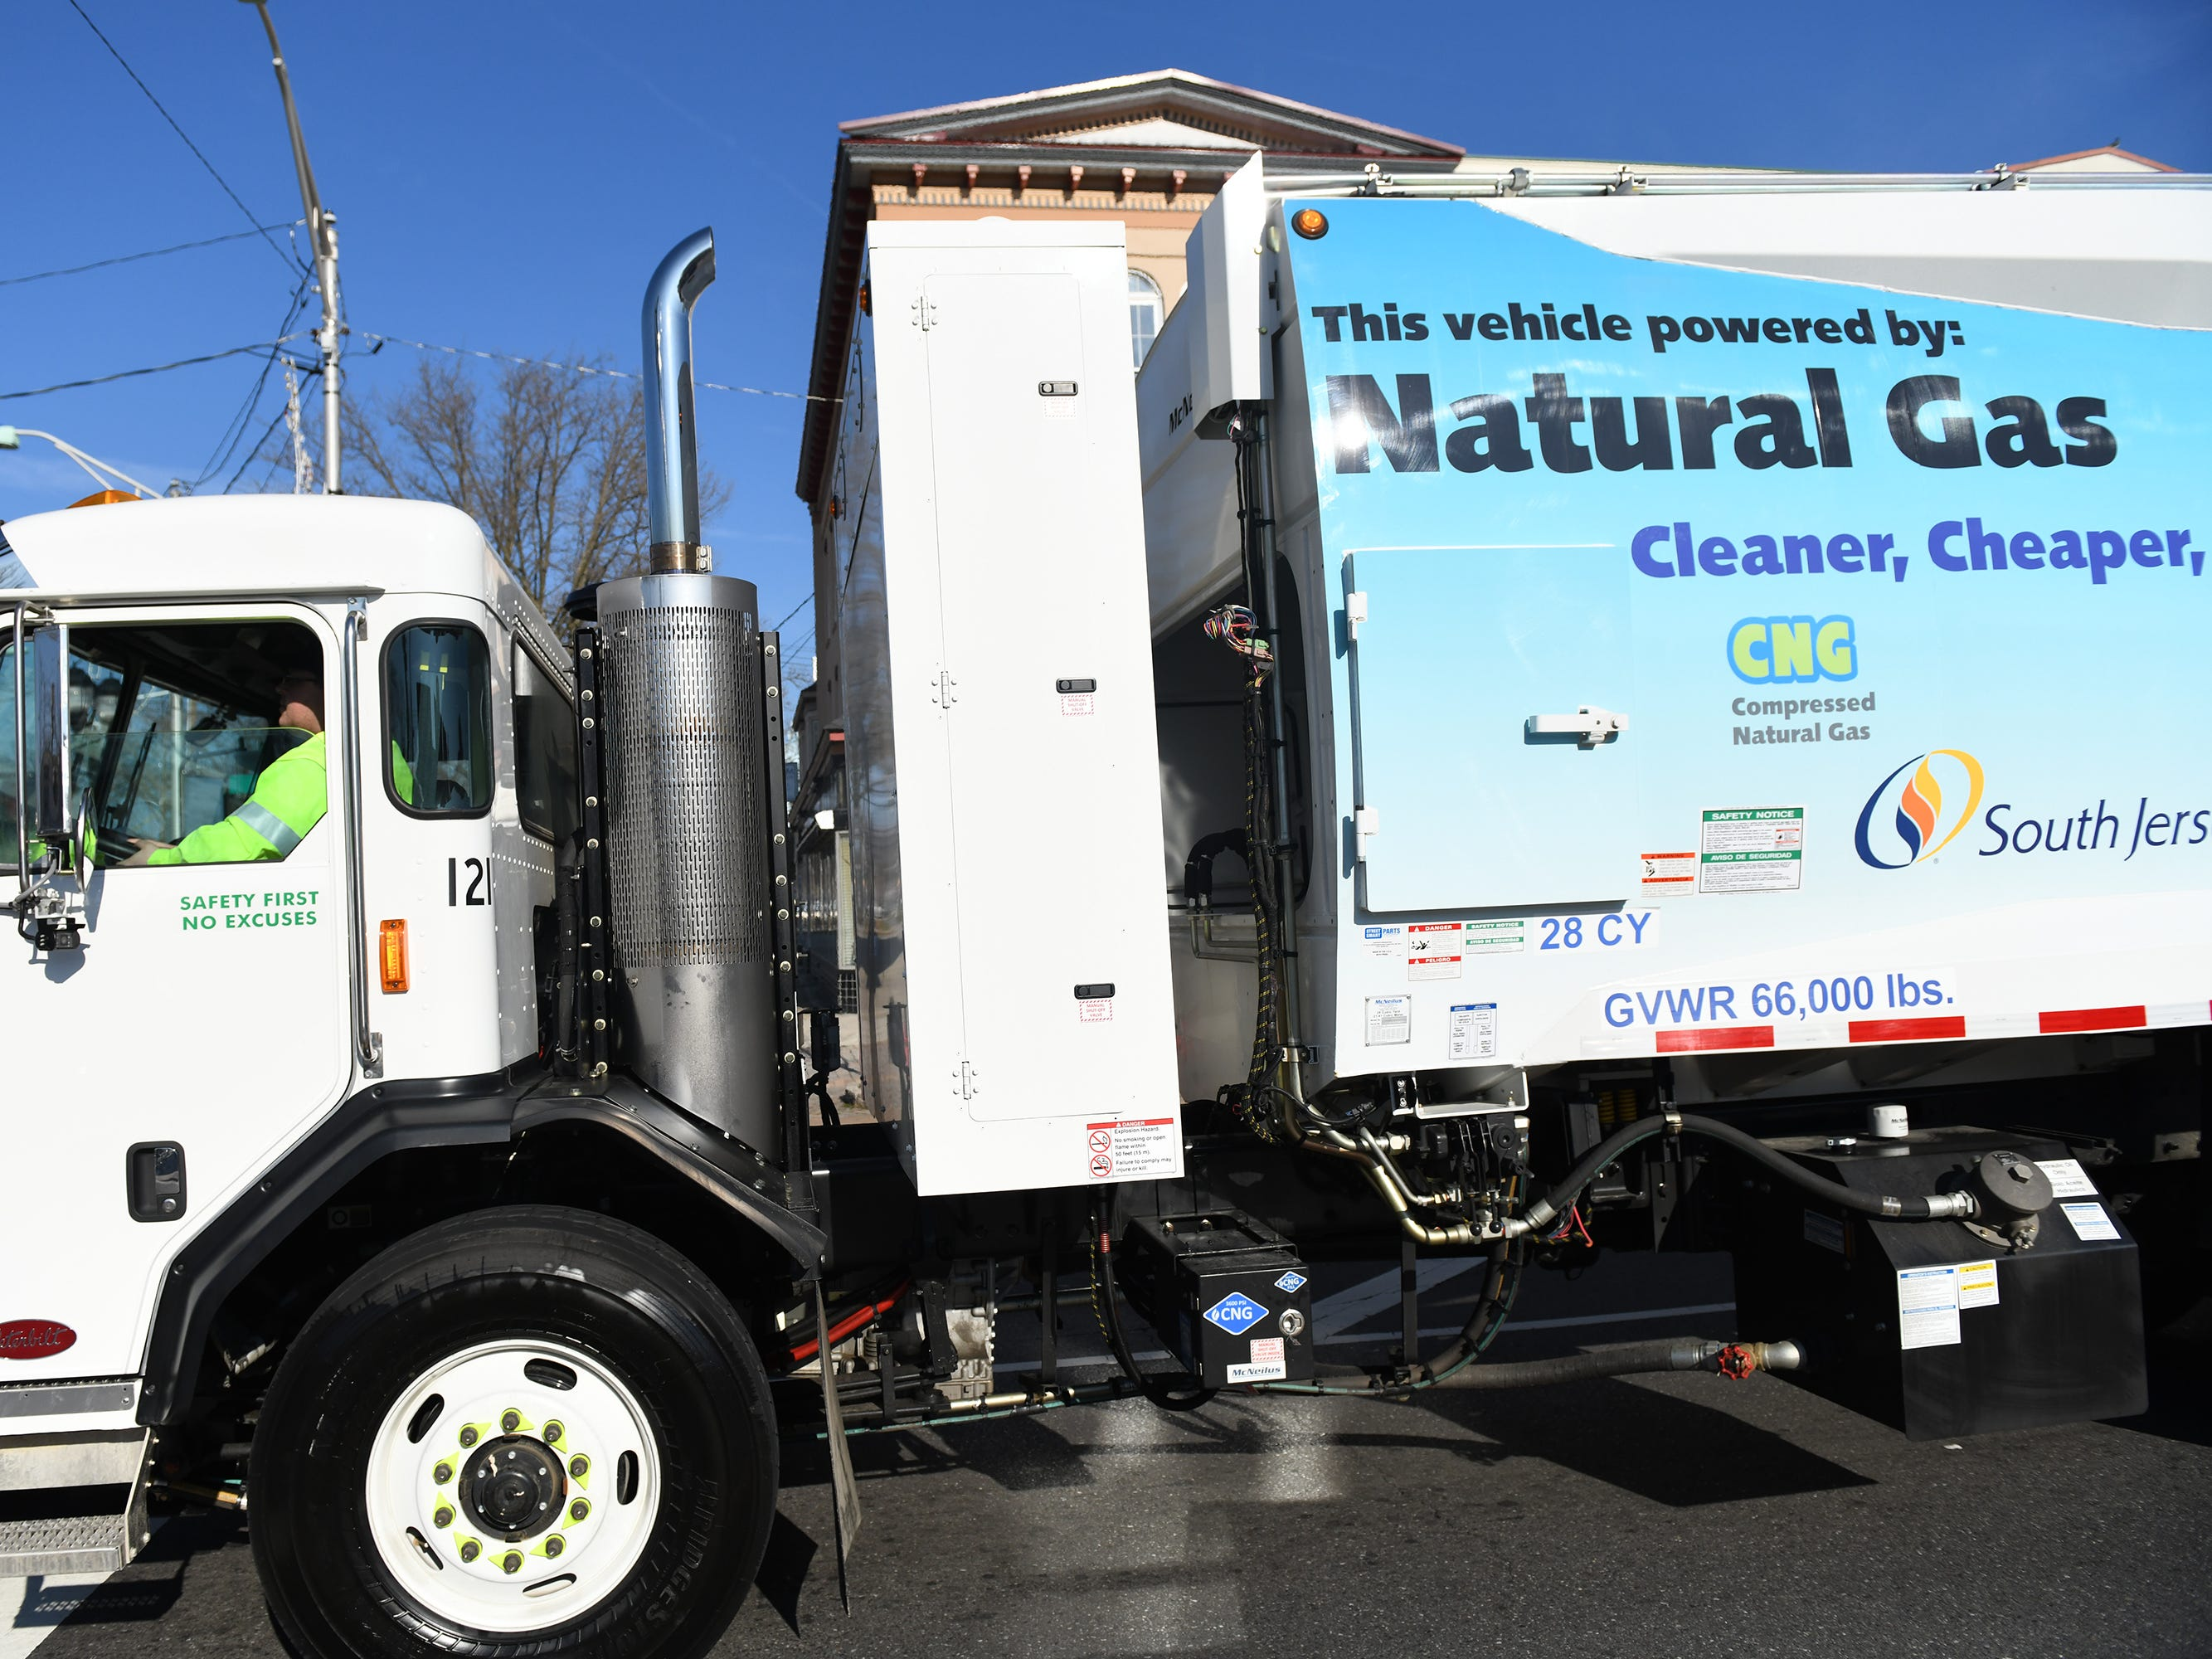 A fleet of 11 new compressed natural gas collection vehicles travels along Landis Avenue in Vineland on Thursday, December 27, 2018.  The Atlantic County Utilities Authority drove the vehicles through the city of Vineland to kick off their partnership with the Cumberland County Improvement Authority and the City of Vineland.